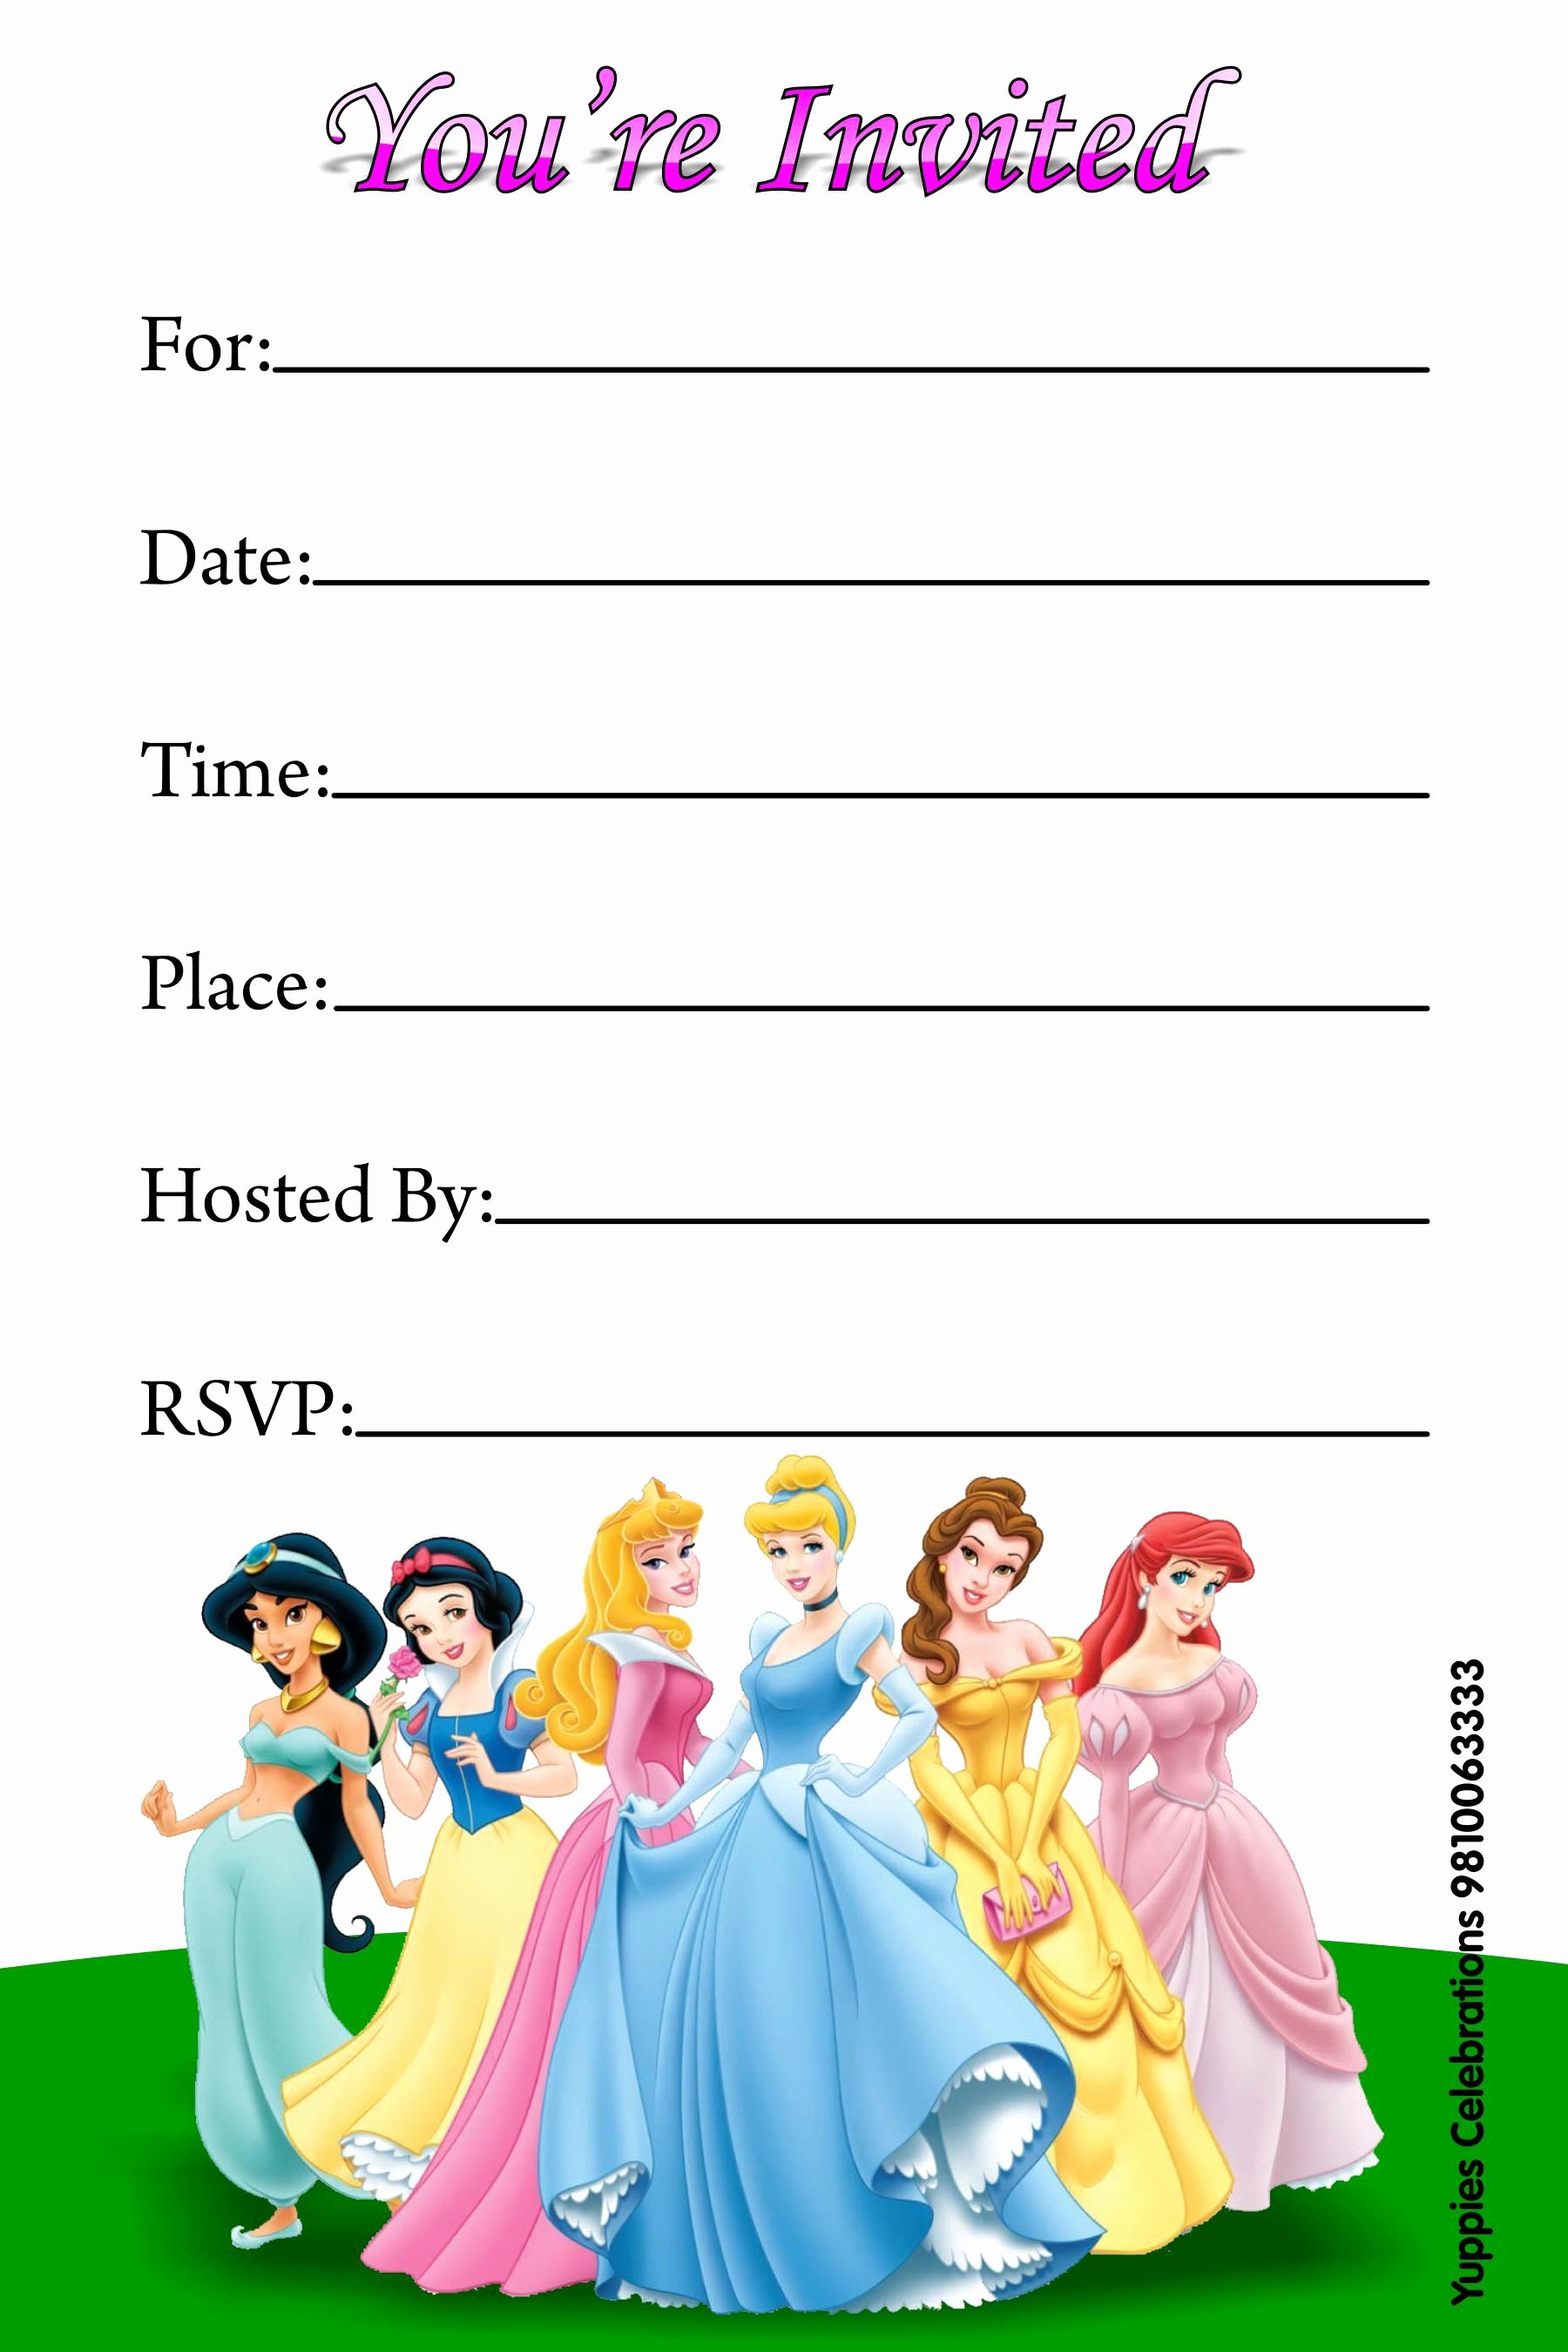 Disney Princess Invitation Template Beautiful Disney Princess Invitations